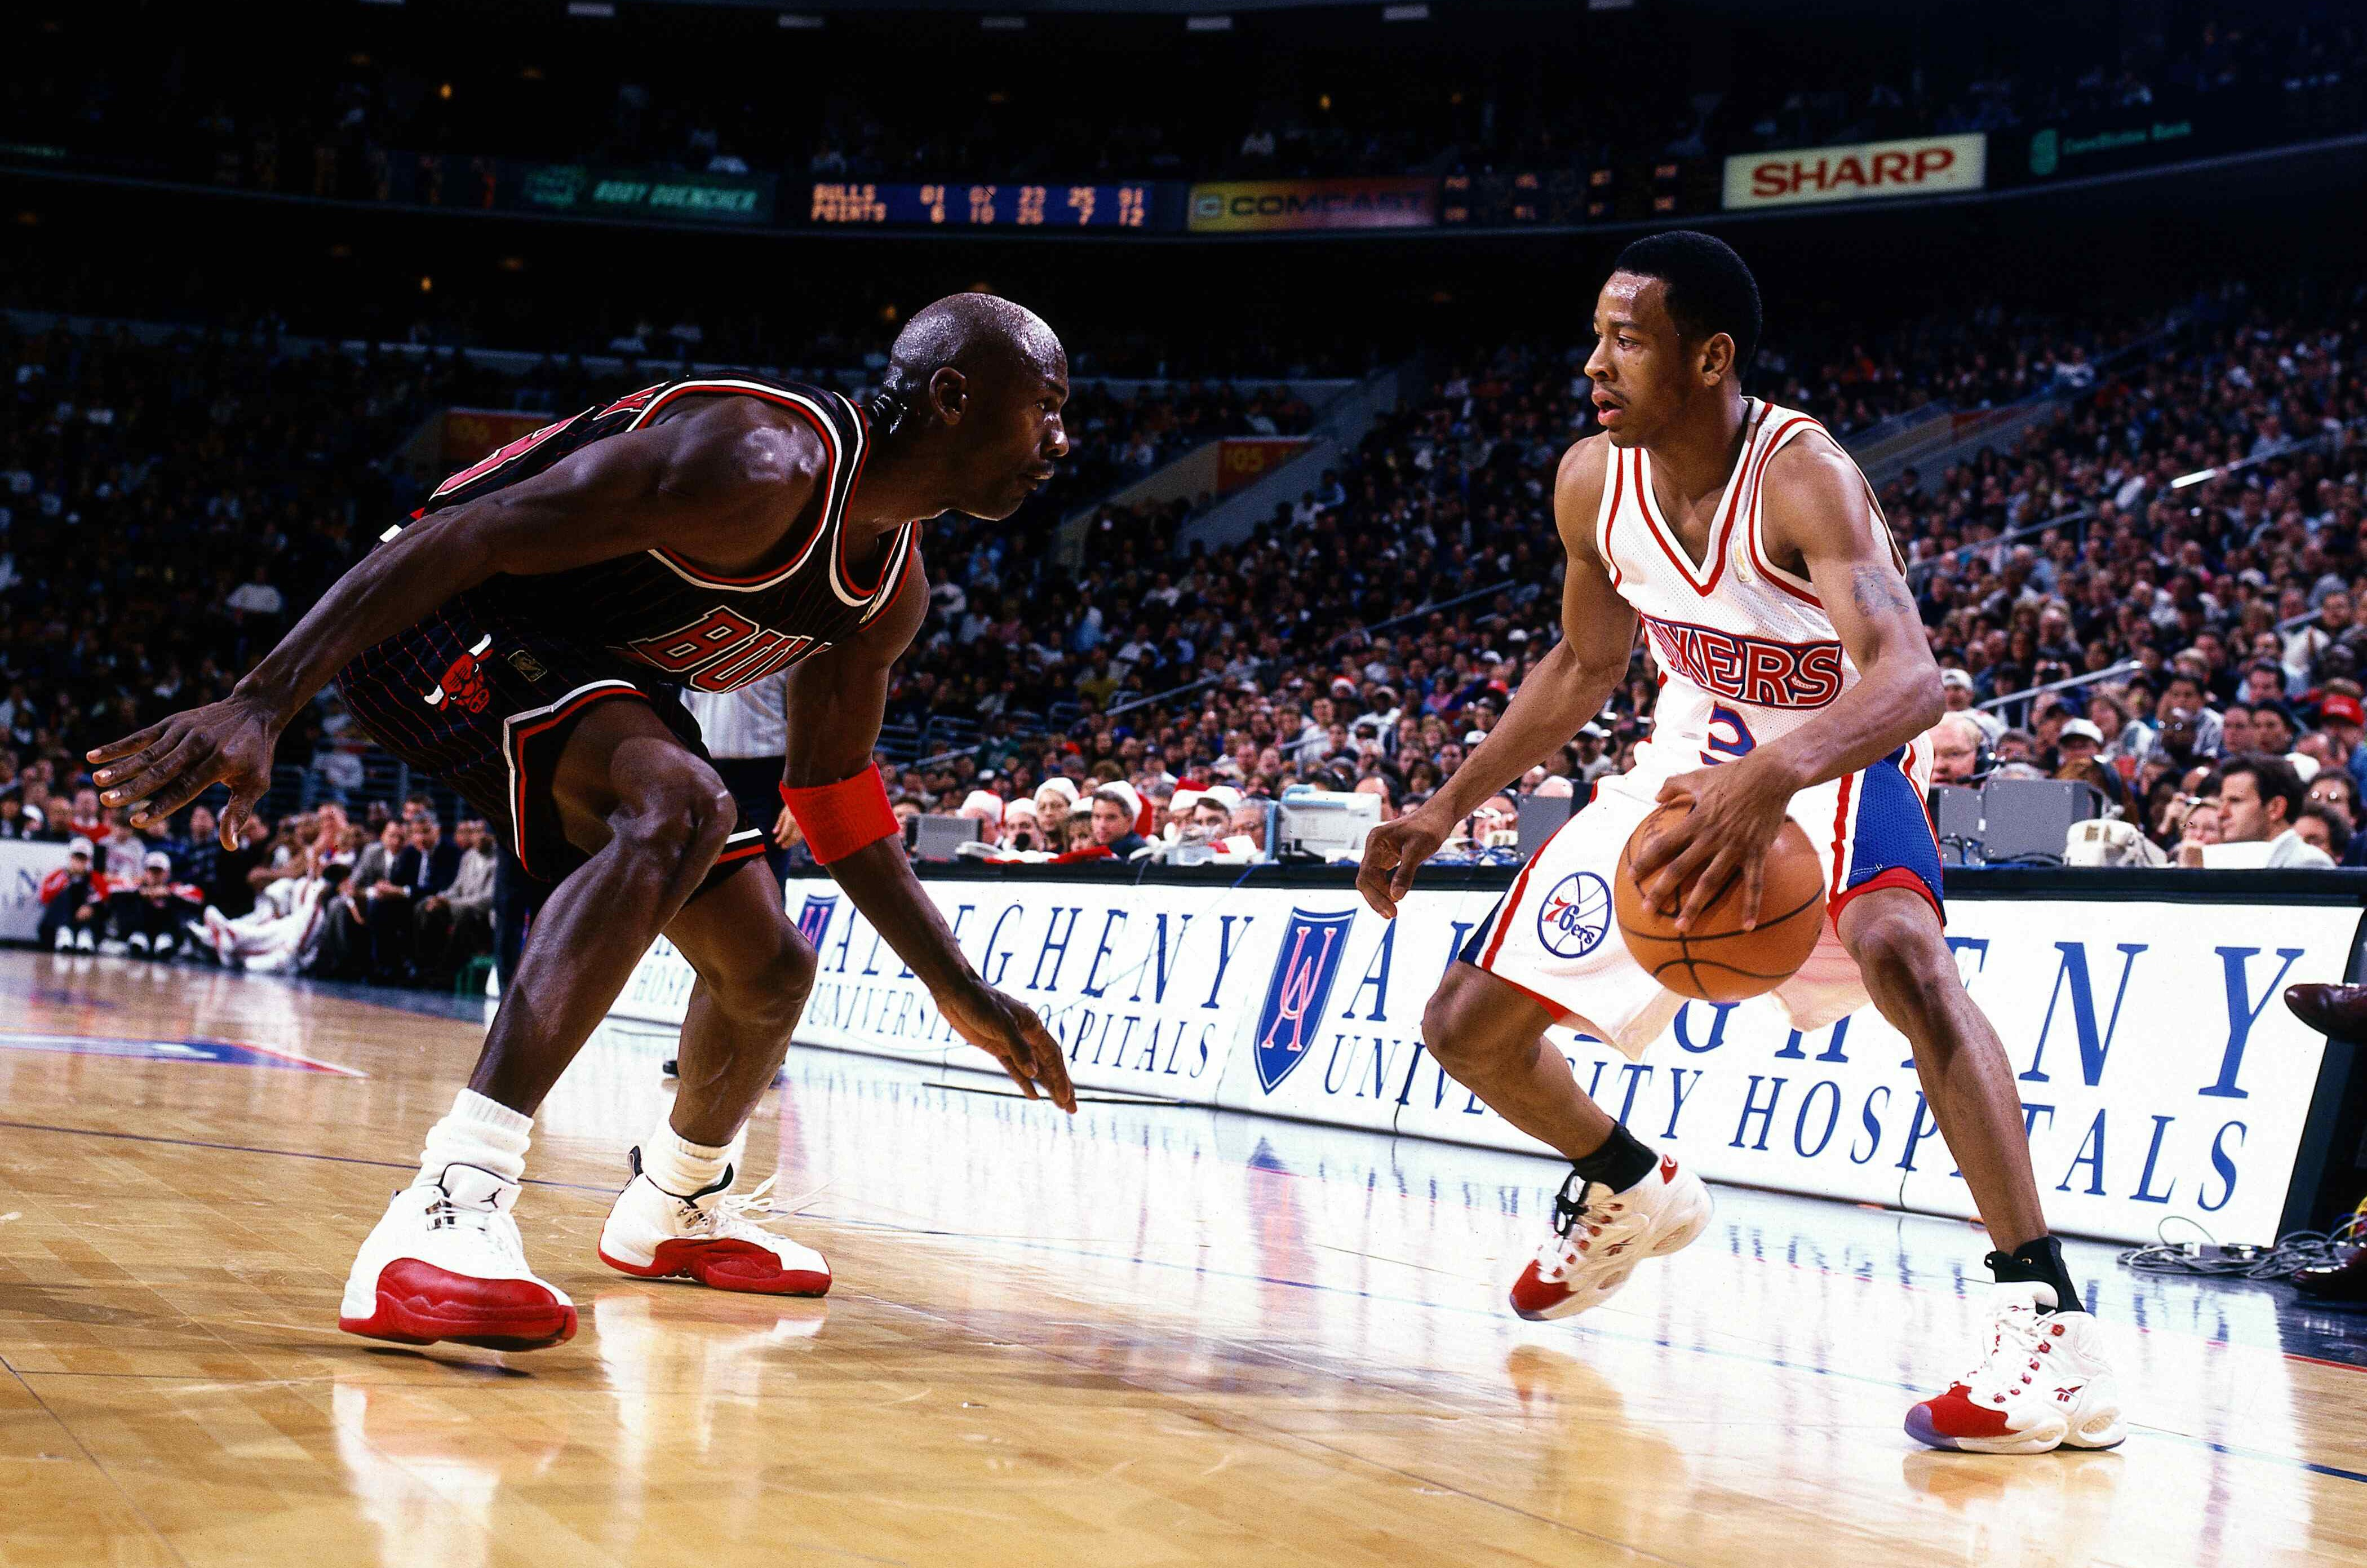 PHILADELPHIA - 1997: Allen Iverson #3 of the Philadelphia 76ers faces off at the perimeter against Michael Jordan #23 of the Chicago Bulls at the First Union Center during the 1997 NBA season in Philadelphia, Pennsylvania. Copyright 1997 NBAE (Photo by Lou Capozzola/NBAE/Getty Images)